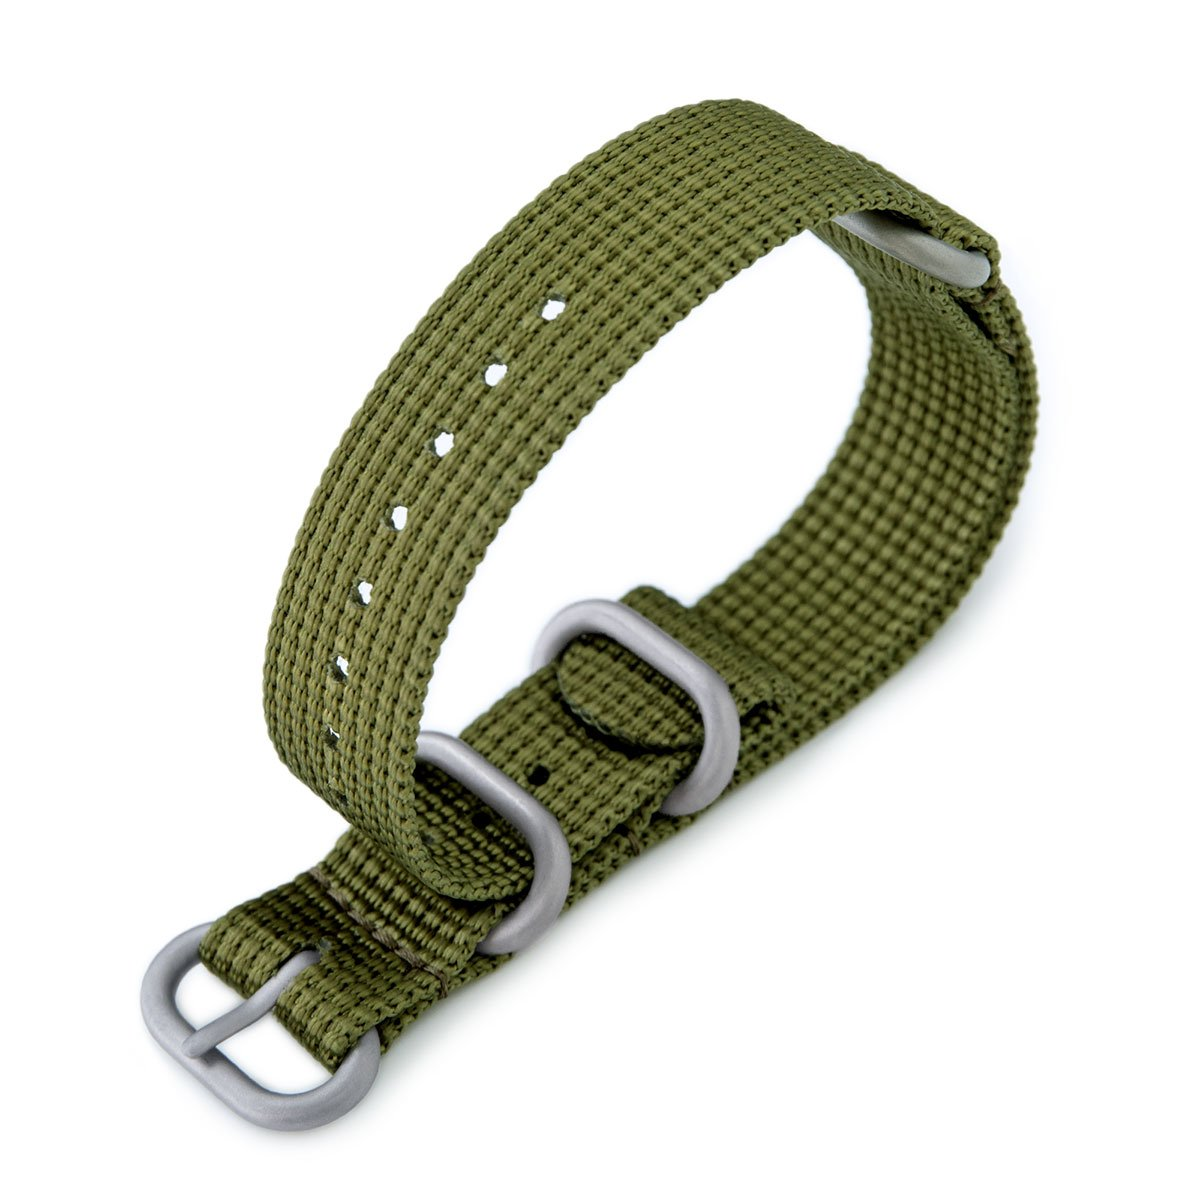 MiLTAT 18mm 3 Rings Zulu military watch strap 3D woven nylon armband Olive Green Brushed Hardware Strapcode Watch Bands